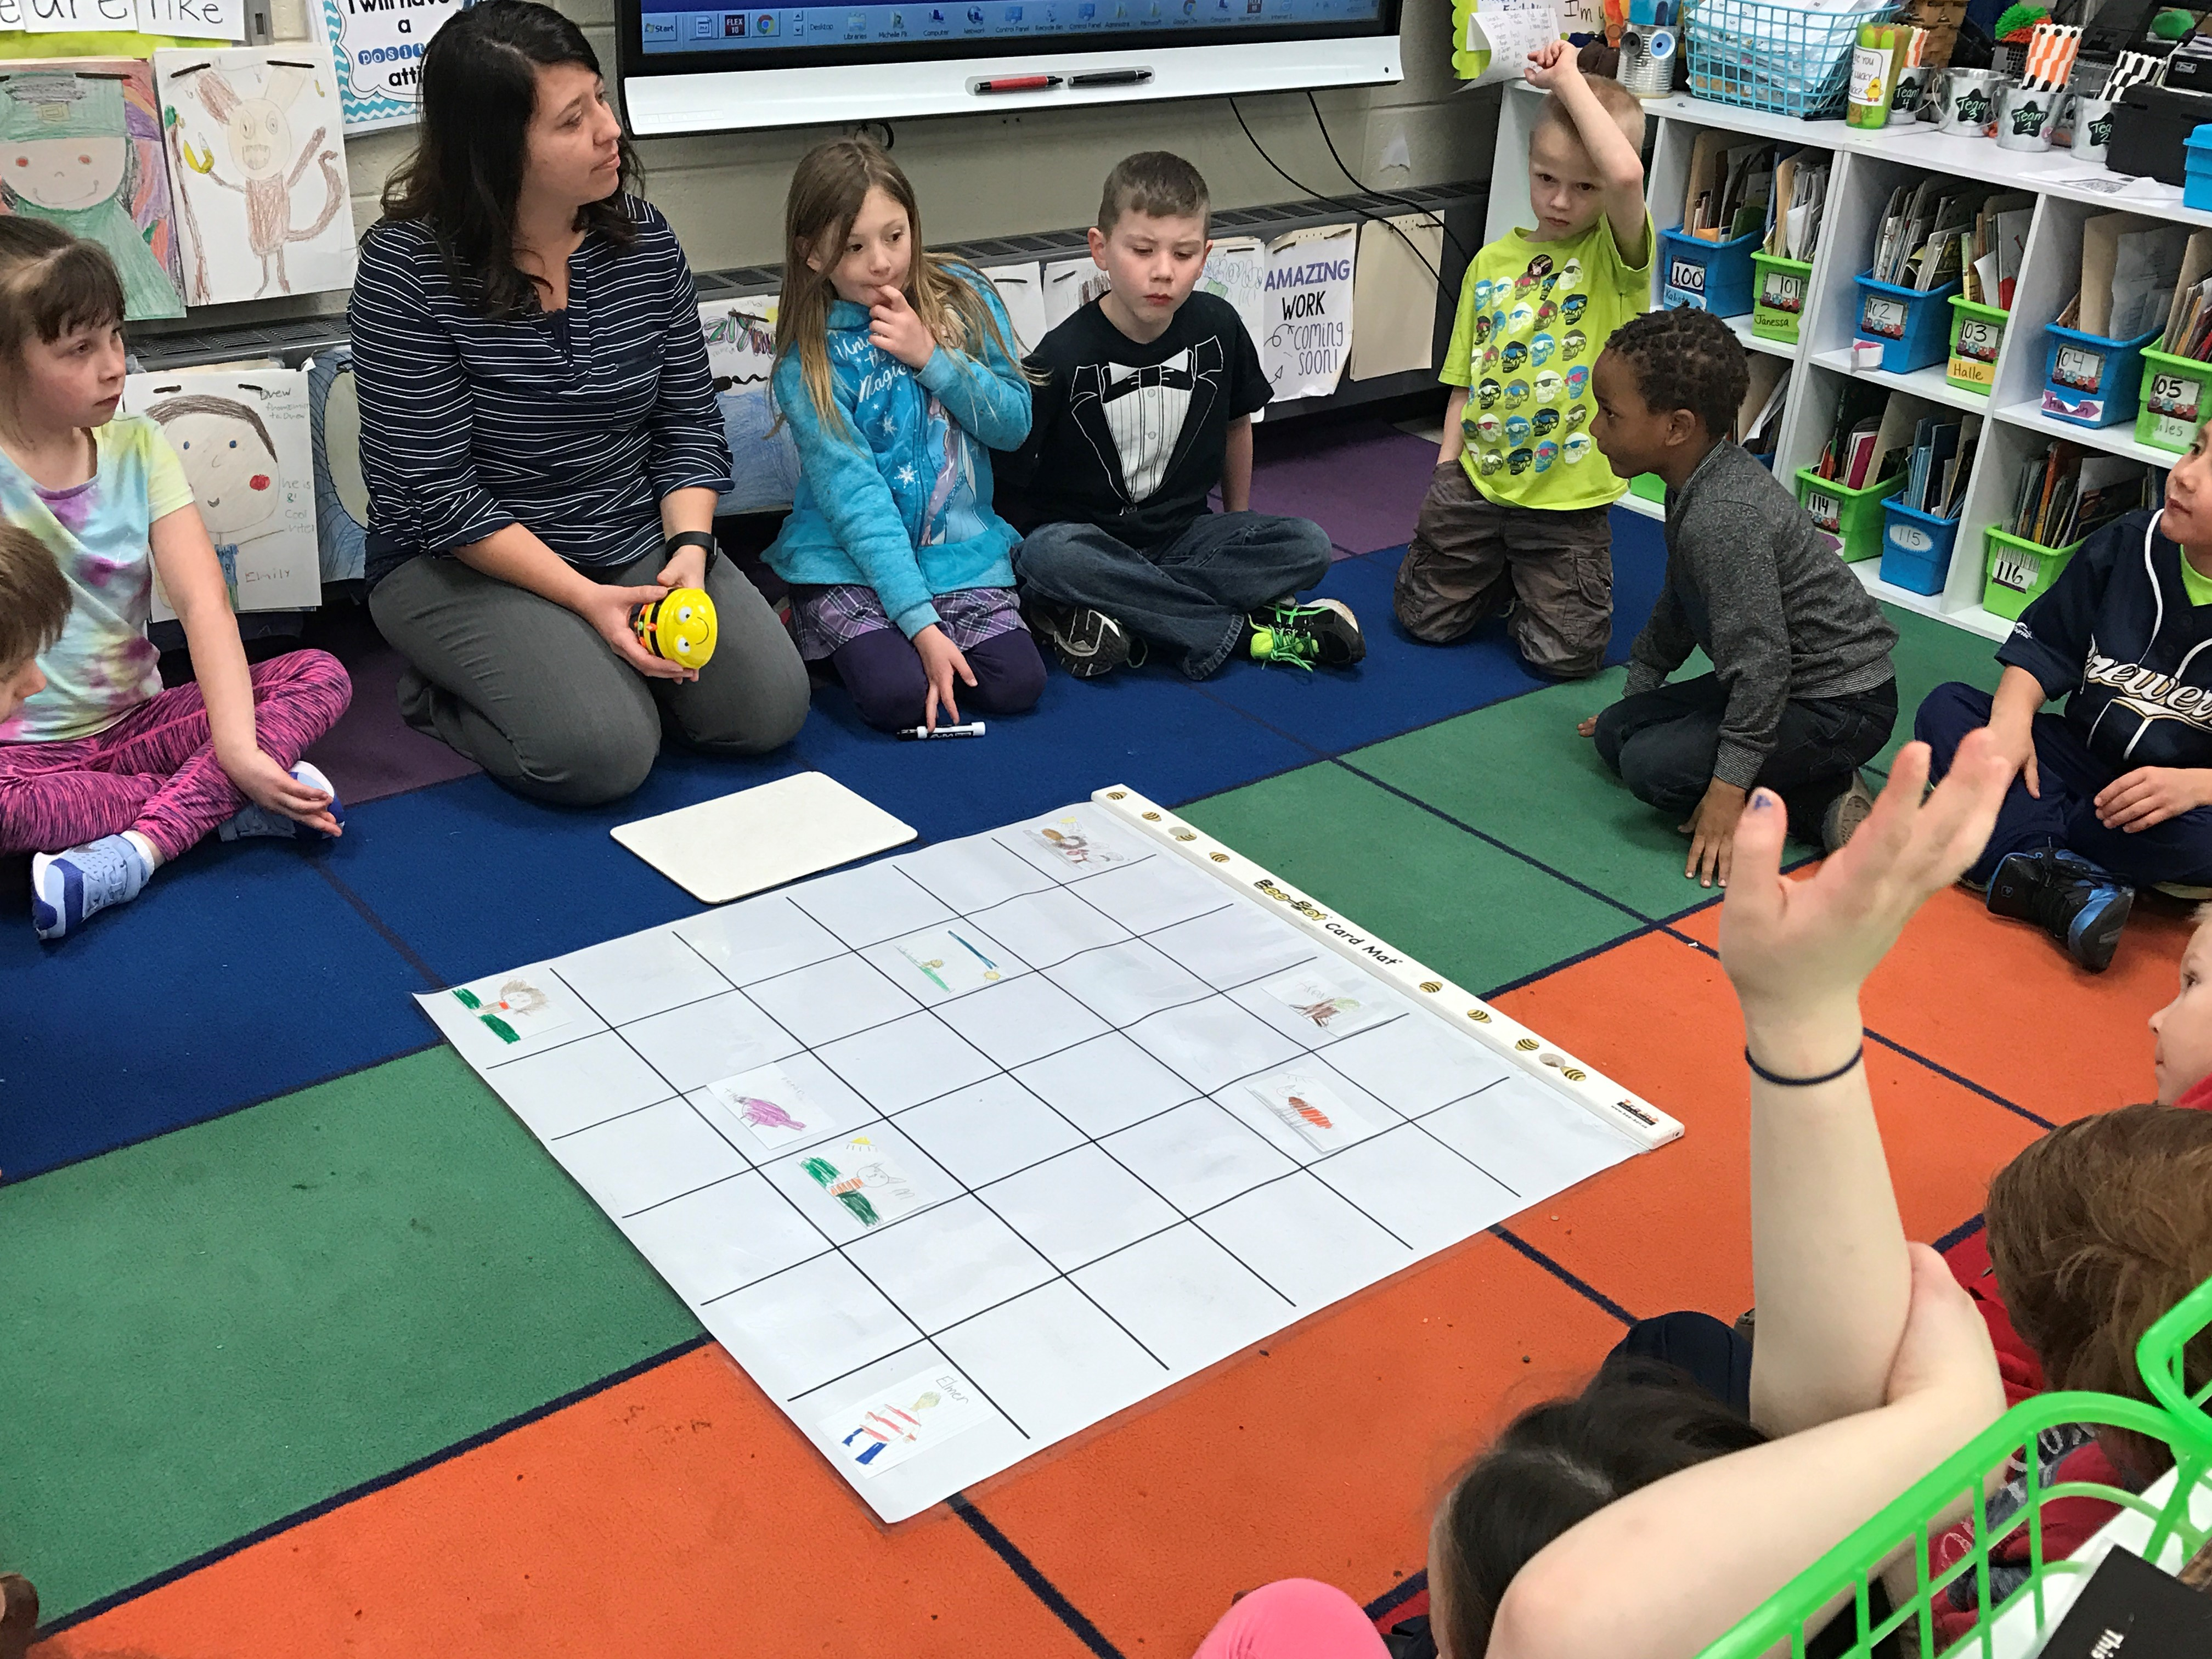 Michelle Flicek explaining the day's assignment to her first grade students at King Elementary in Green Bay.(WLUK/Gabrielle Mays)